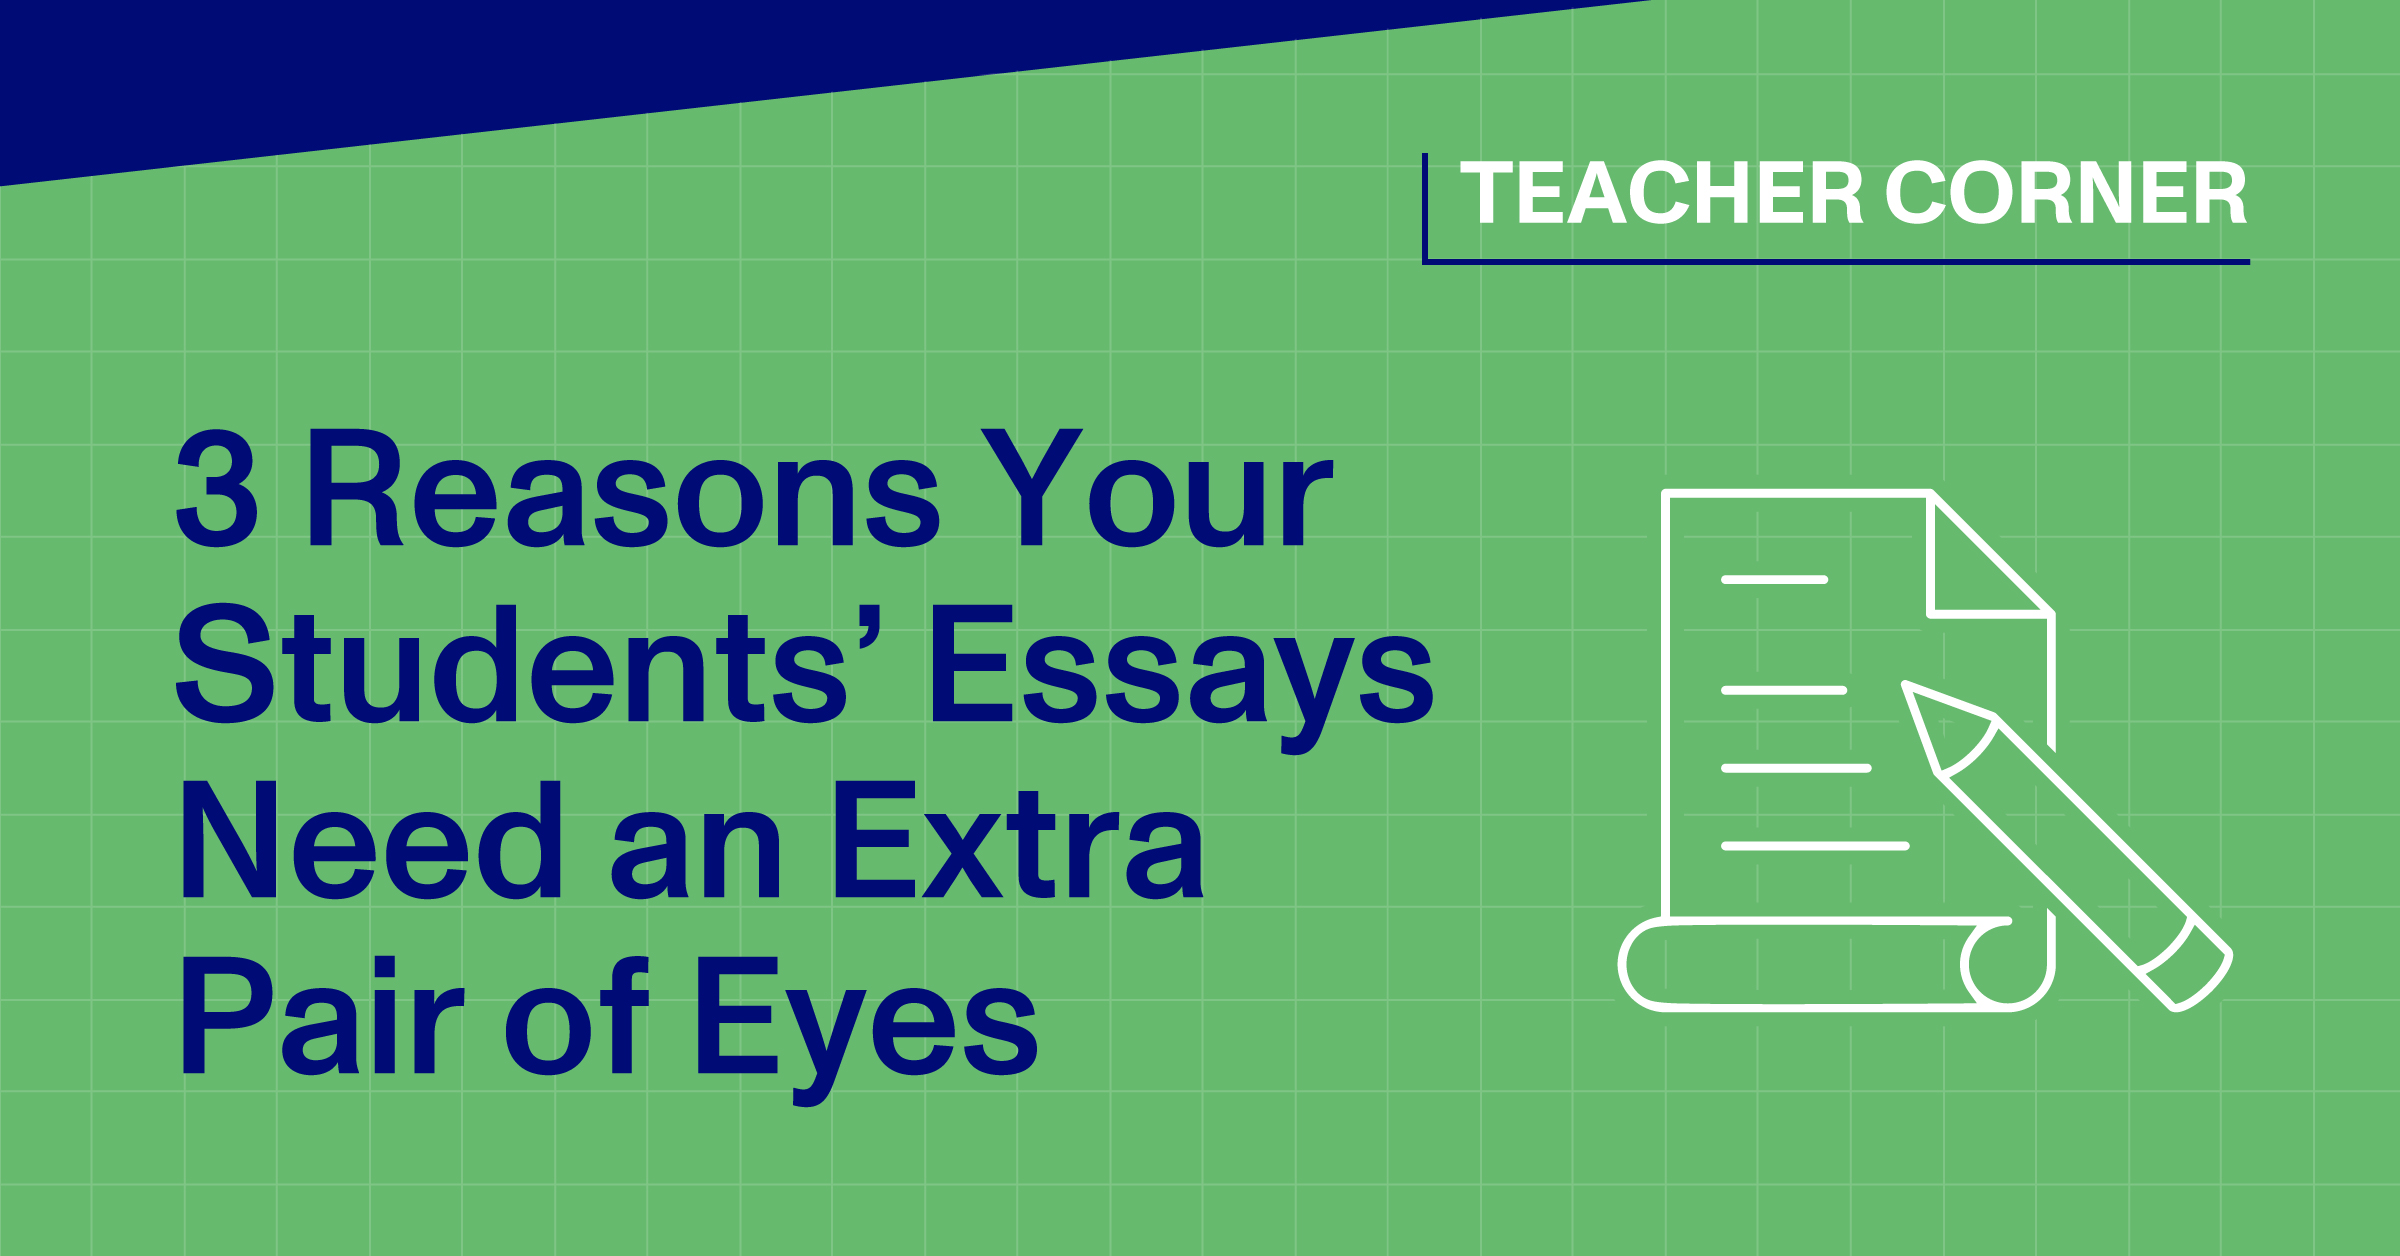 Blog Thumbnail - 3 Reasons Your Students' Essay Need an Extra Pair of Eyes